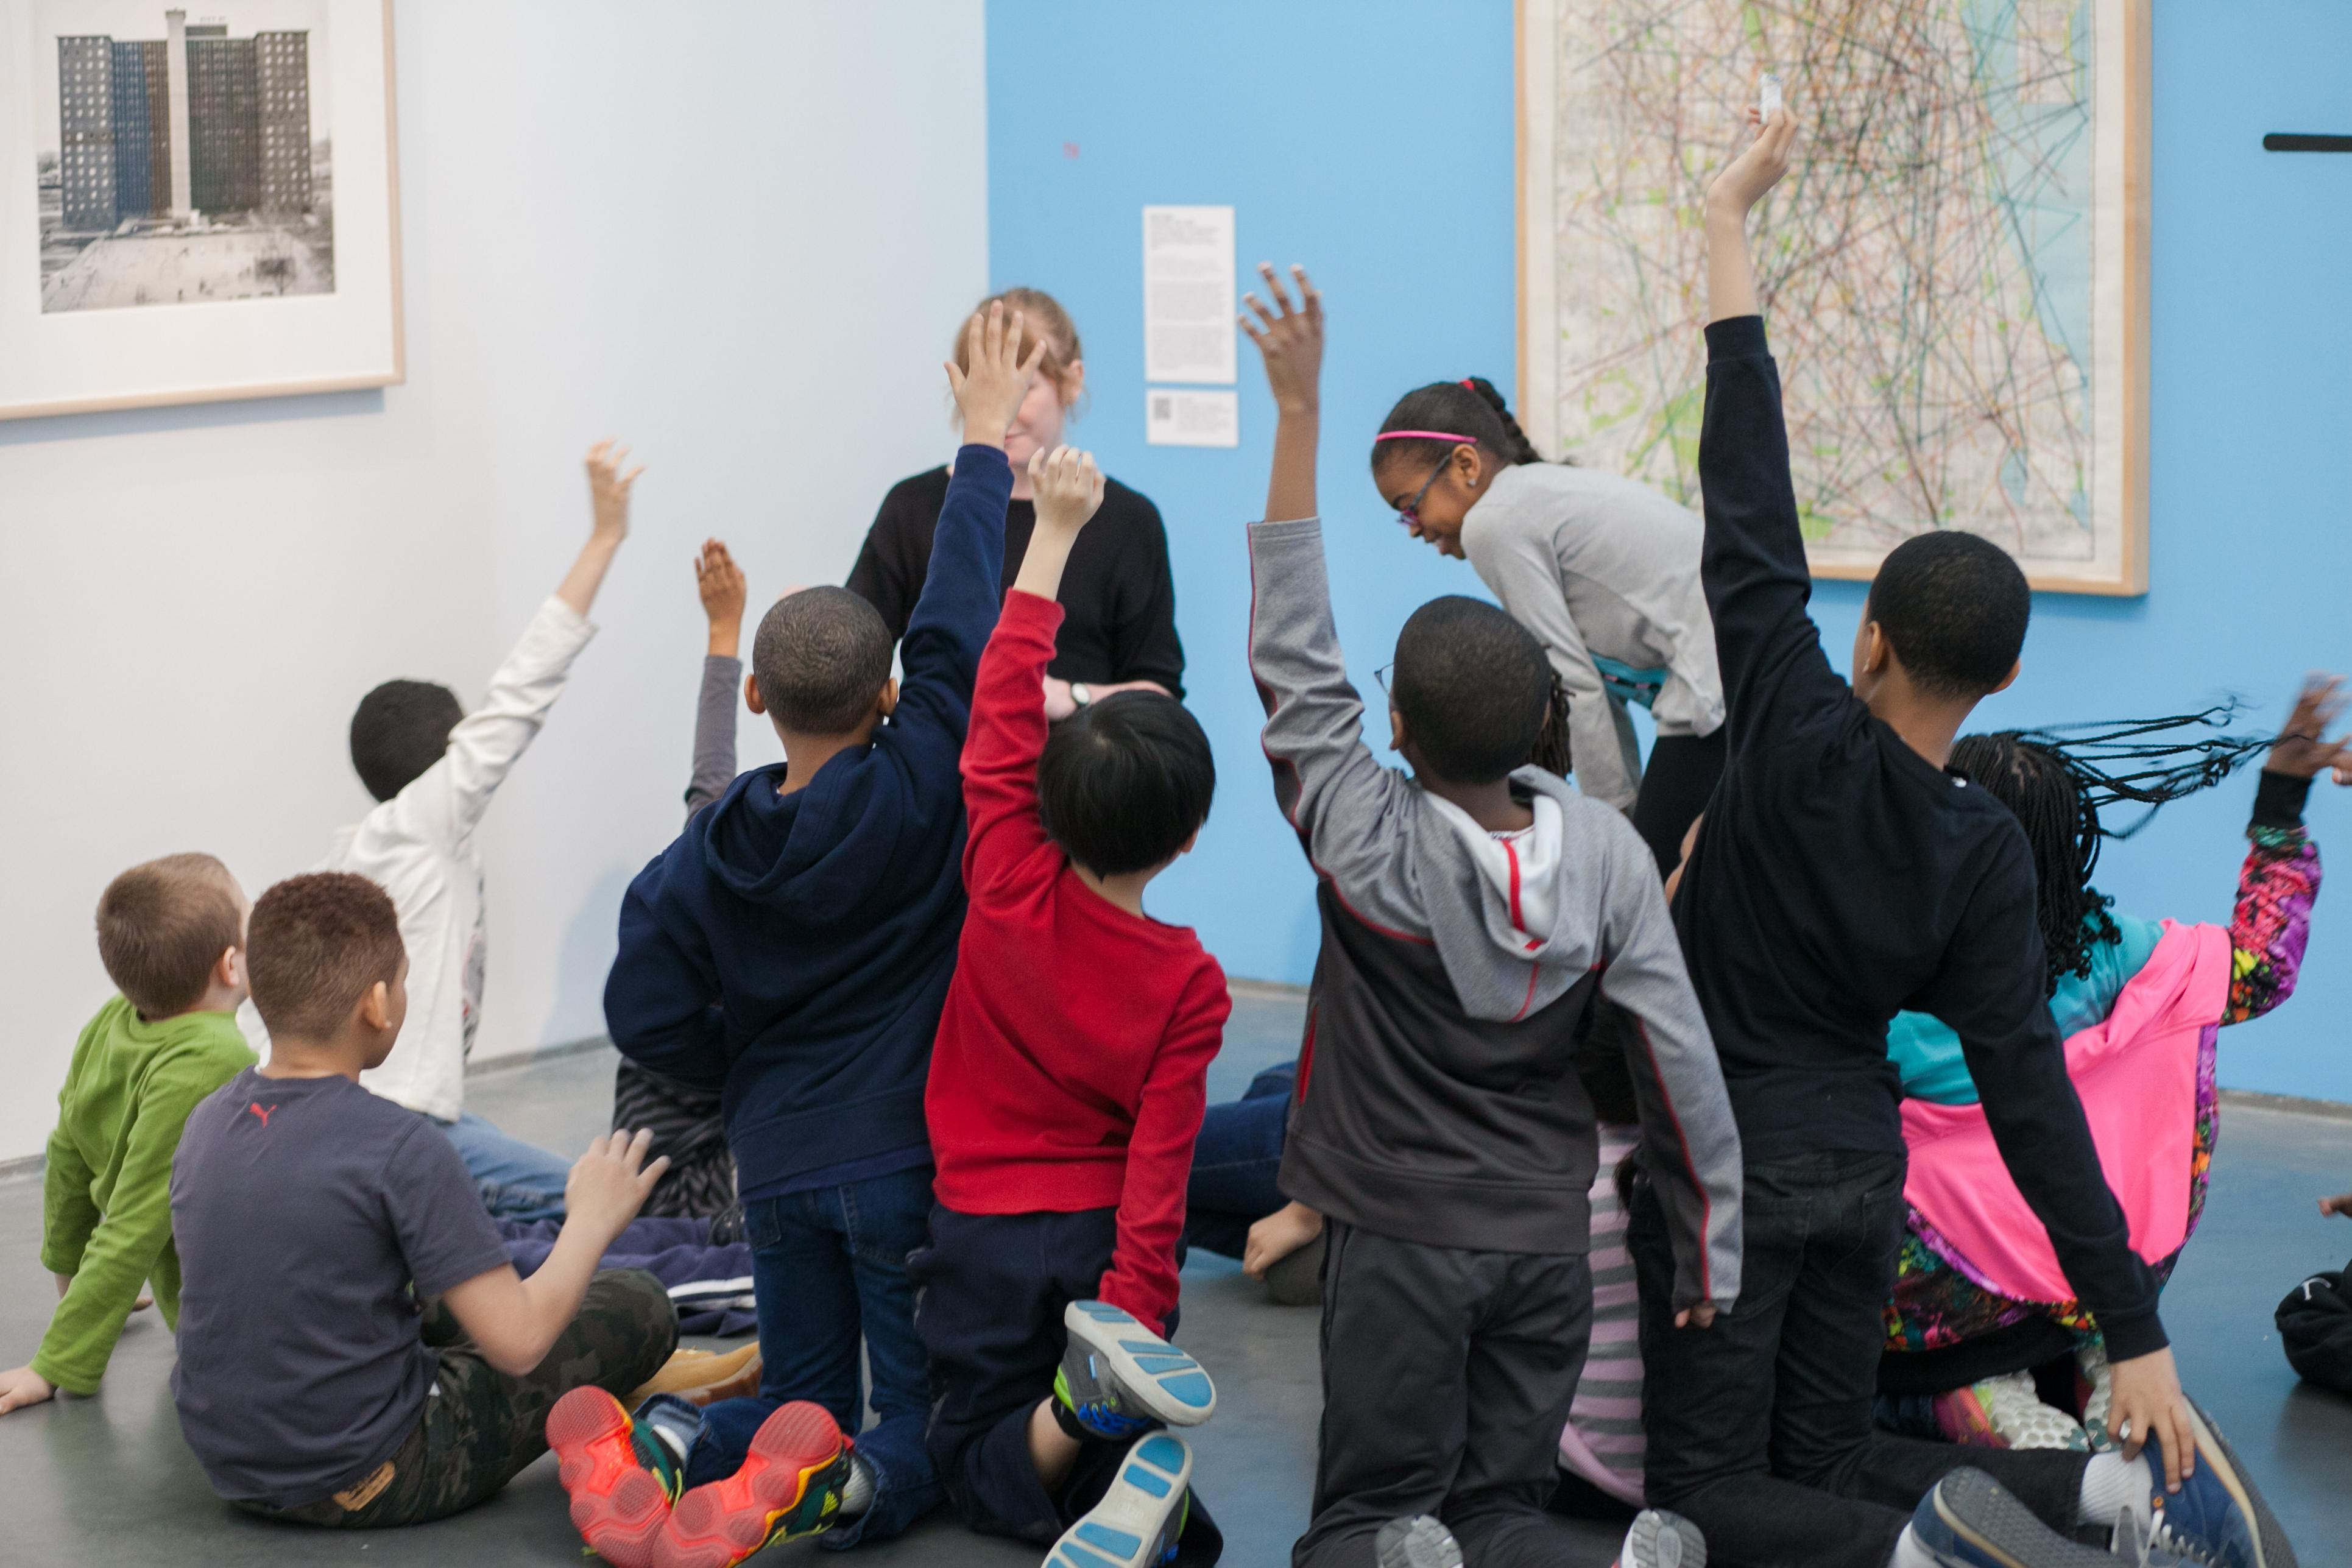 Group of children sitting and kneeling in a gallery raise hands as if to answer a question